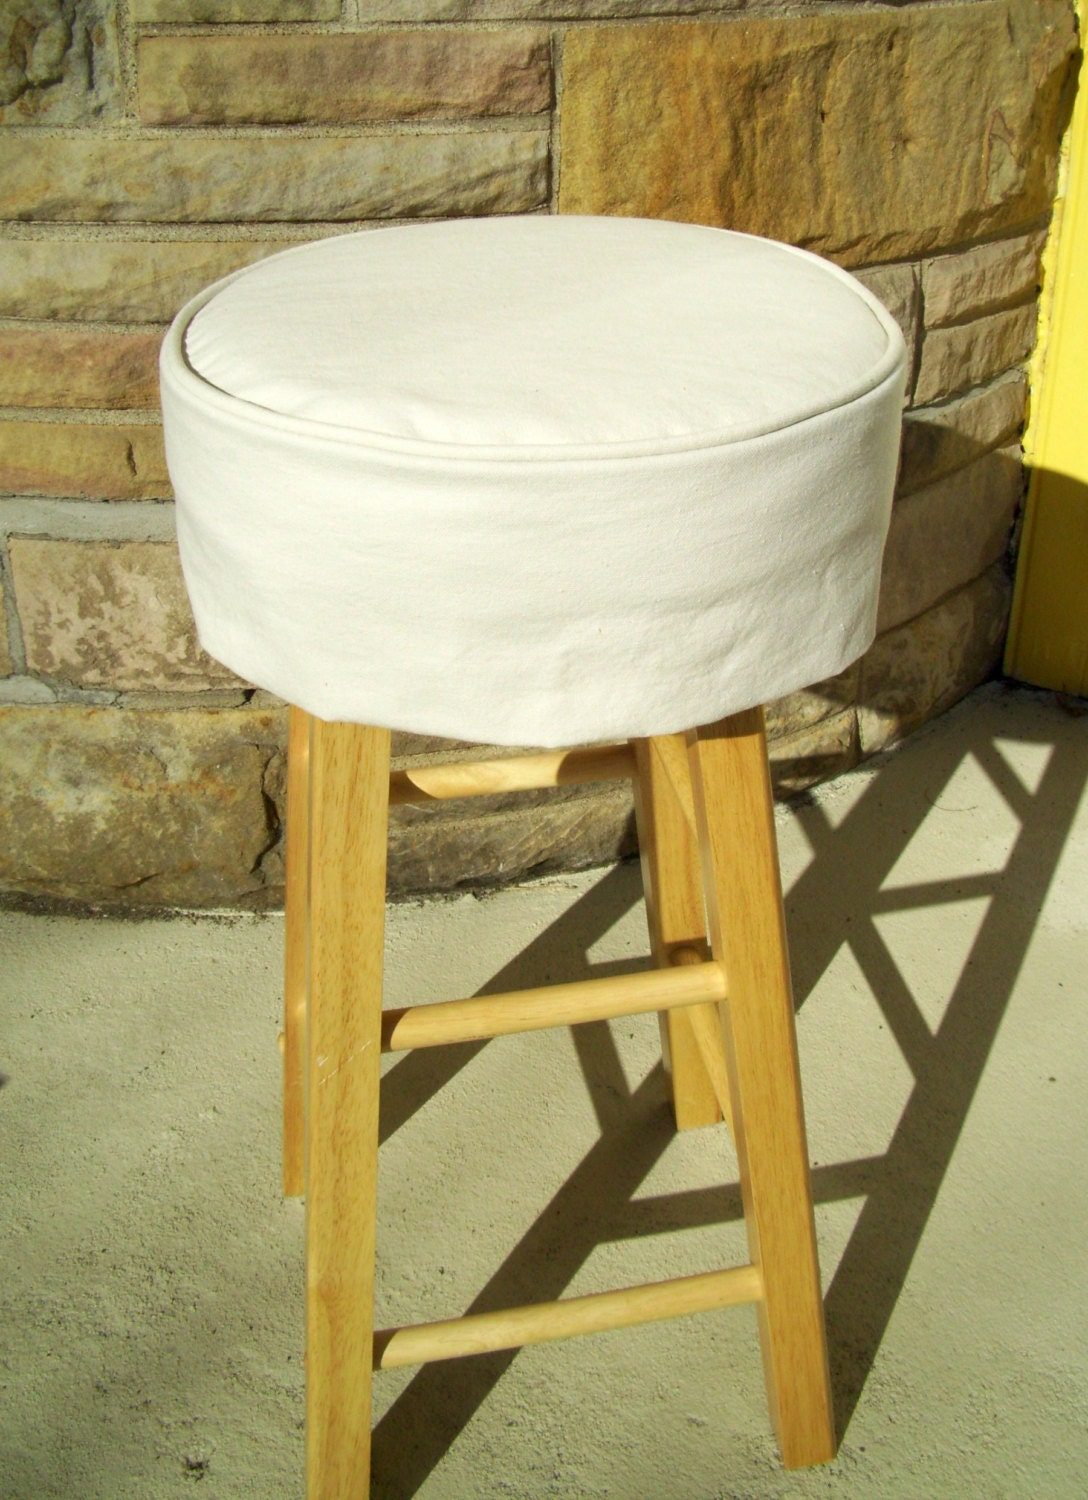 Ivory Bar Stool Cushion Round Barstool Slipcover with : ilfullxfull573206943h56k from www.etsy.com size 1088 x 1500 jpeg 396kB